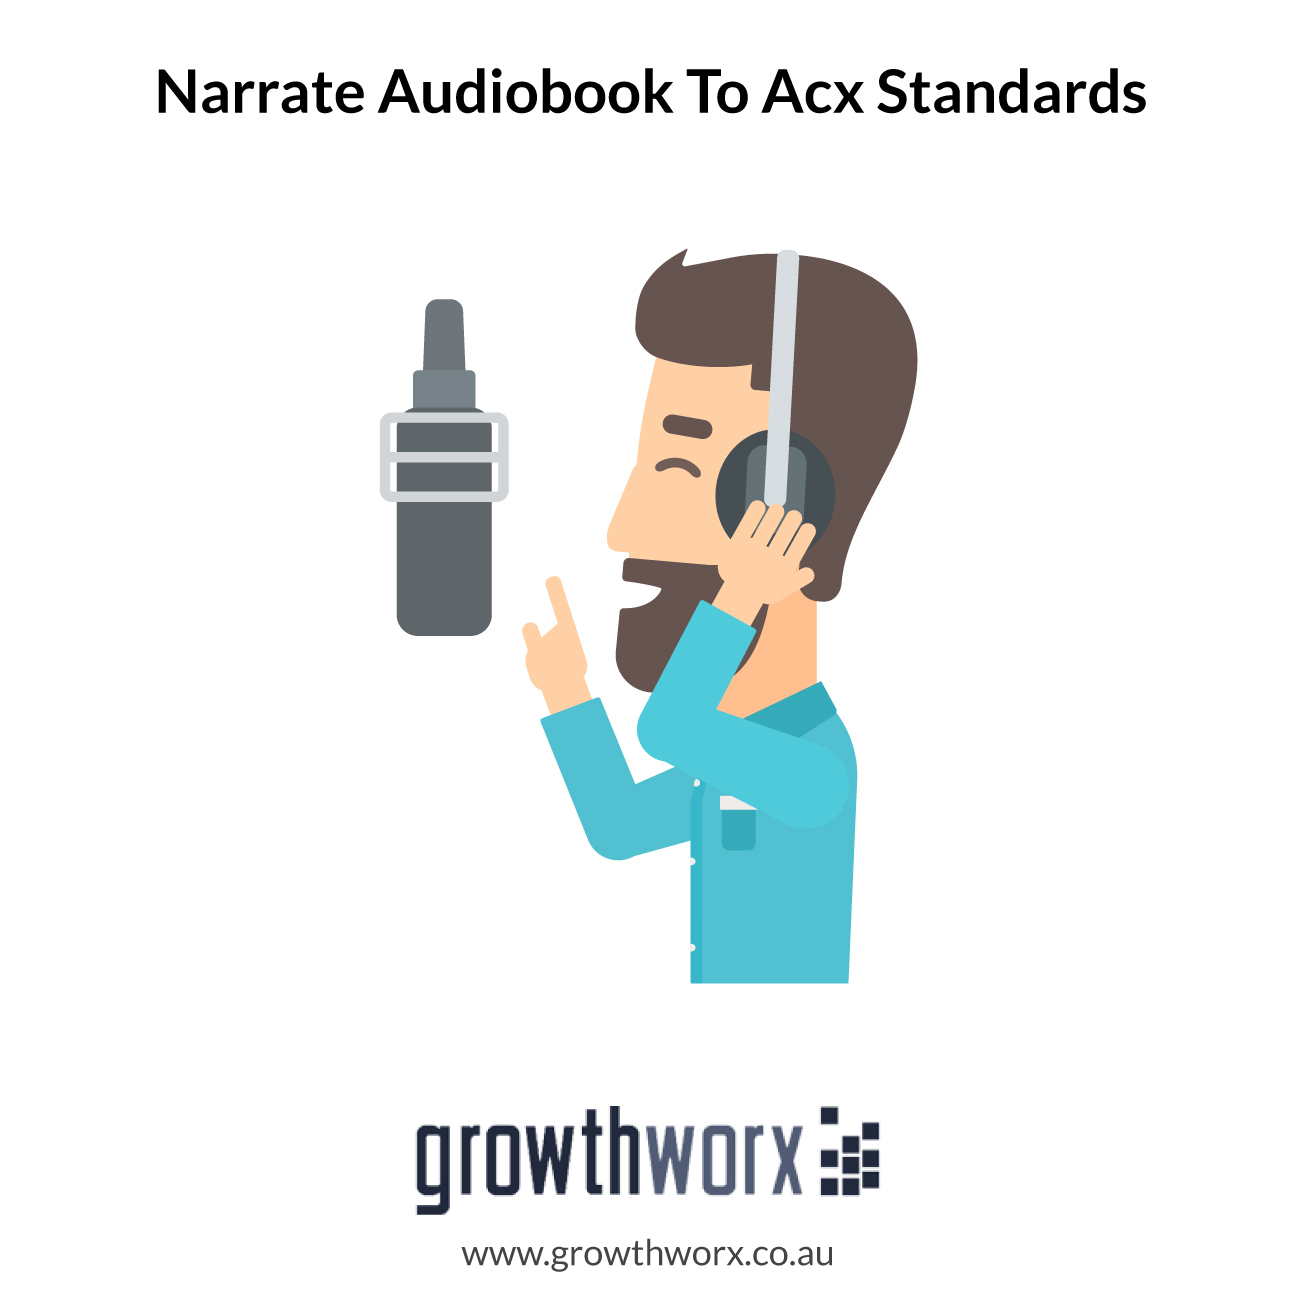 I will narrate an audiobook to acx standards in an american male voice 1